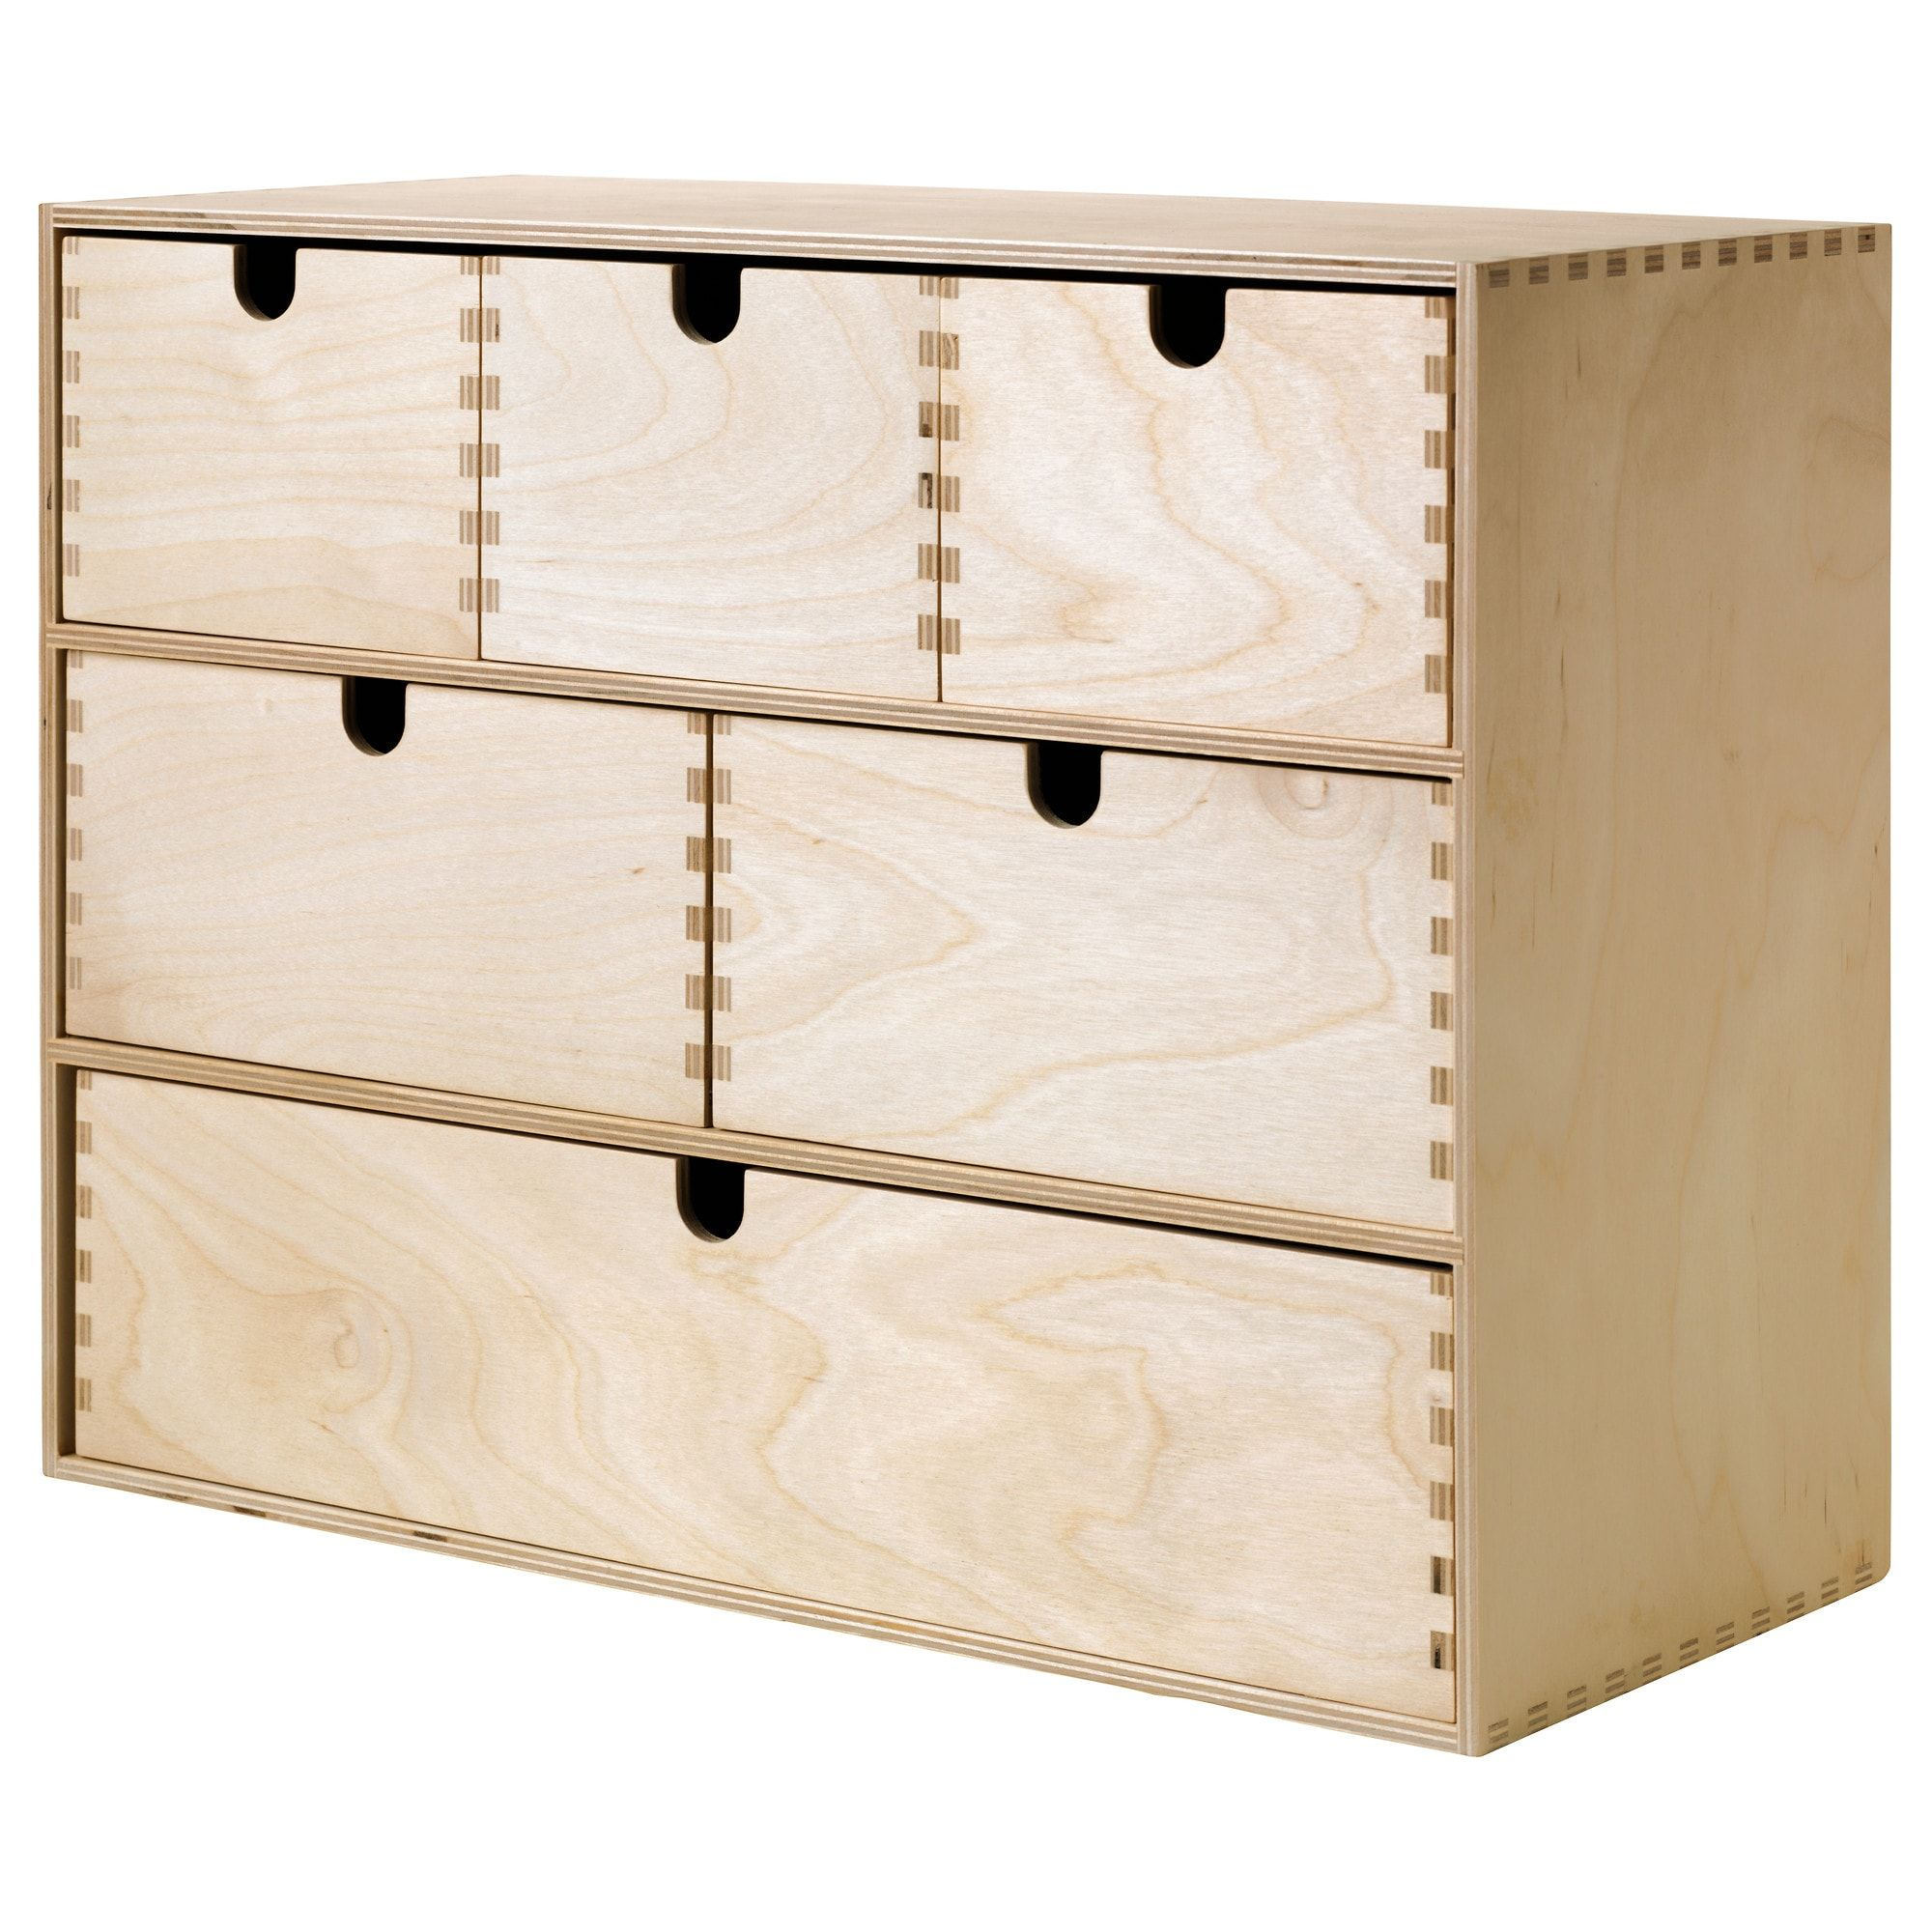 Moppe Mini Storage Chest Birch Plywood 16 X7x12 5 8 Ikea In 2020 Mini Storage Small Storage Storage Boxes